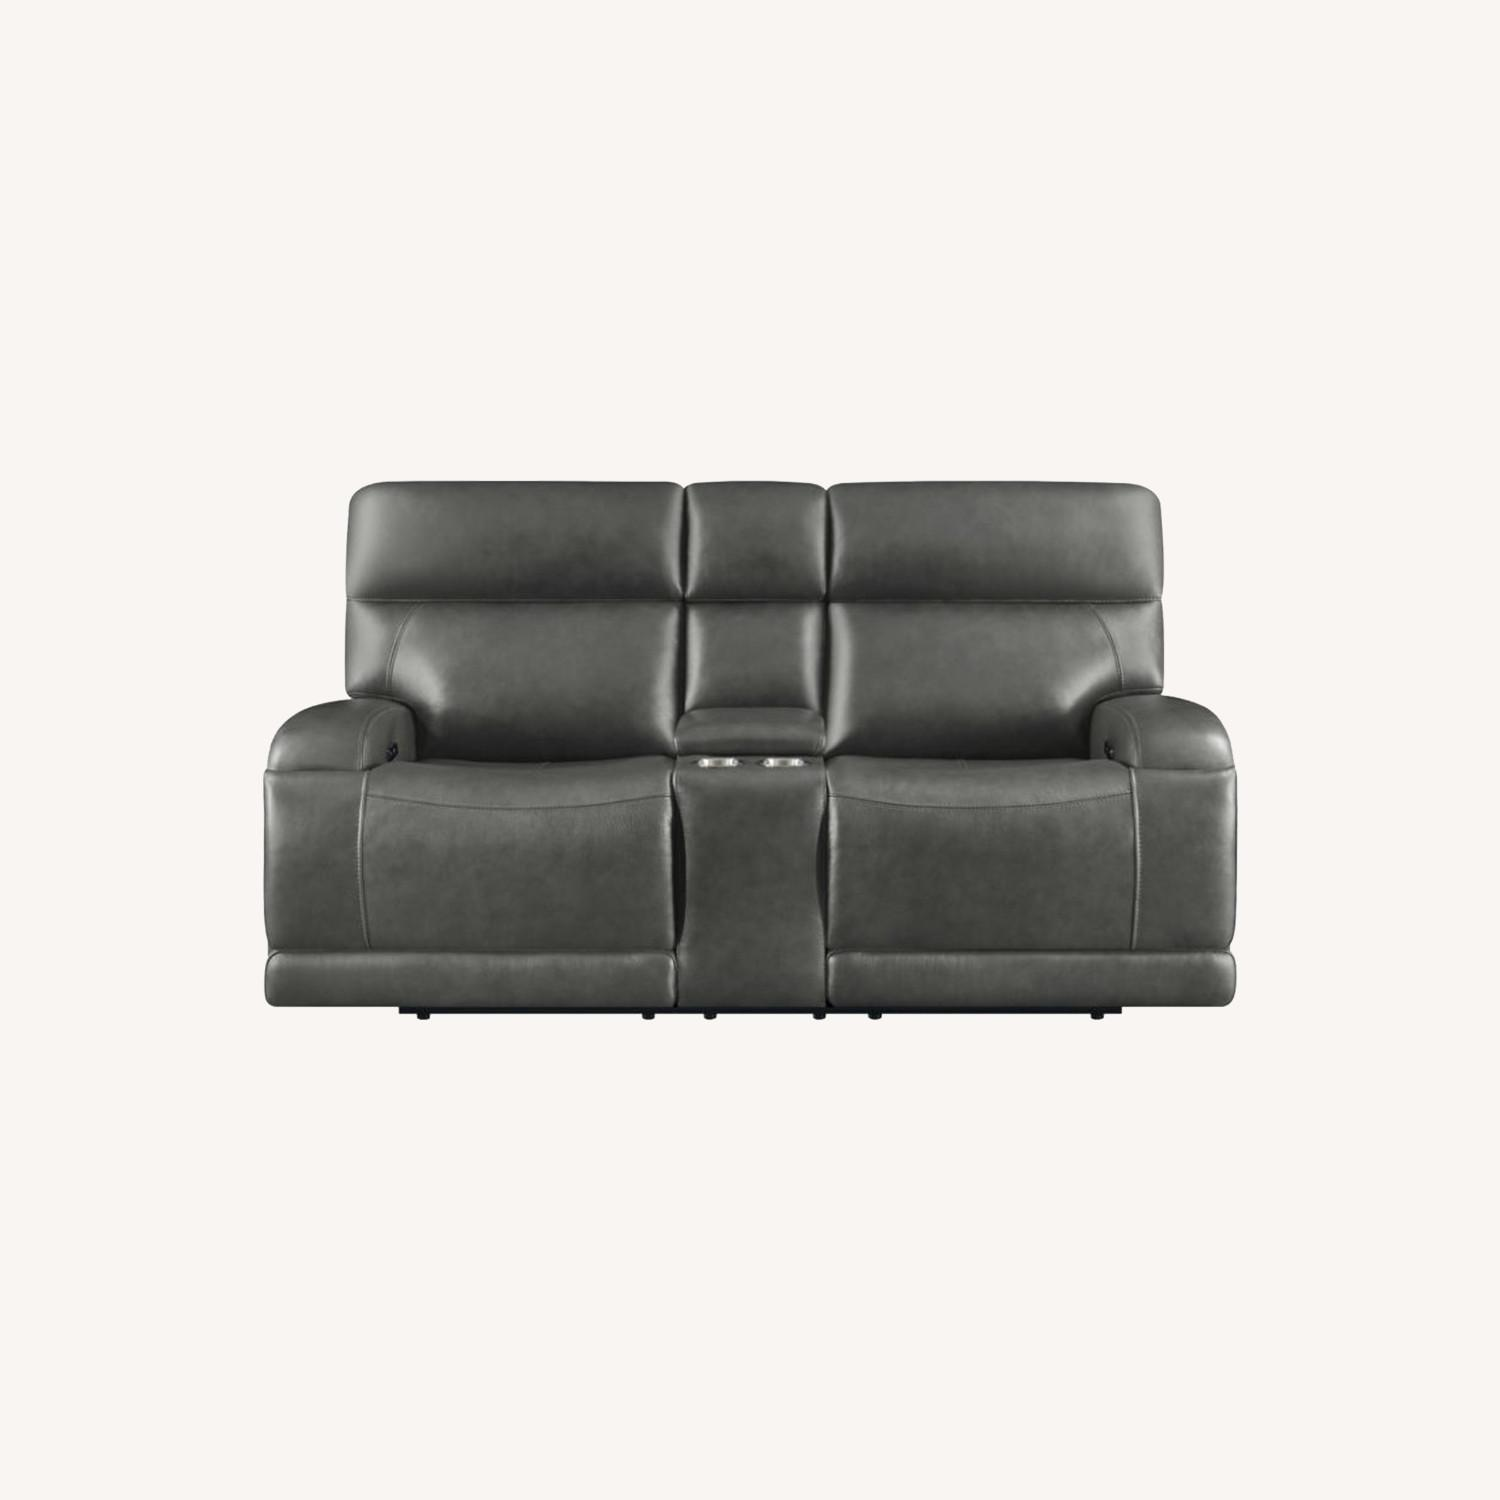 Power Loveseat W/ Console In Charcoal Leatherette - image-11